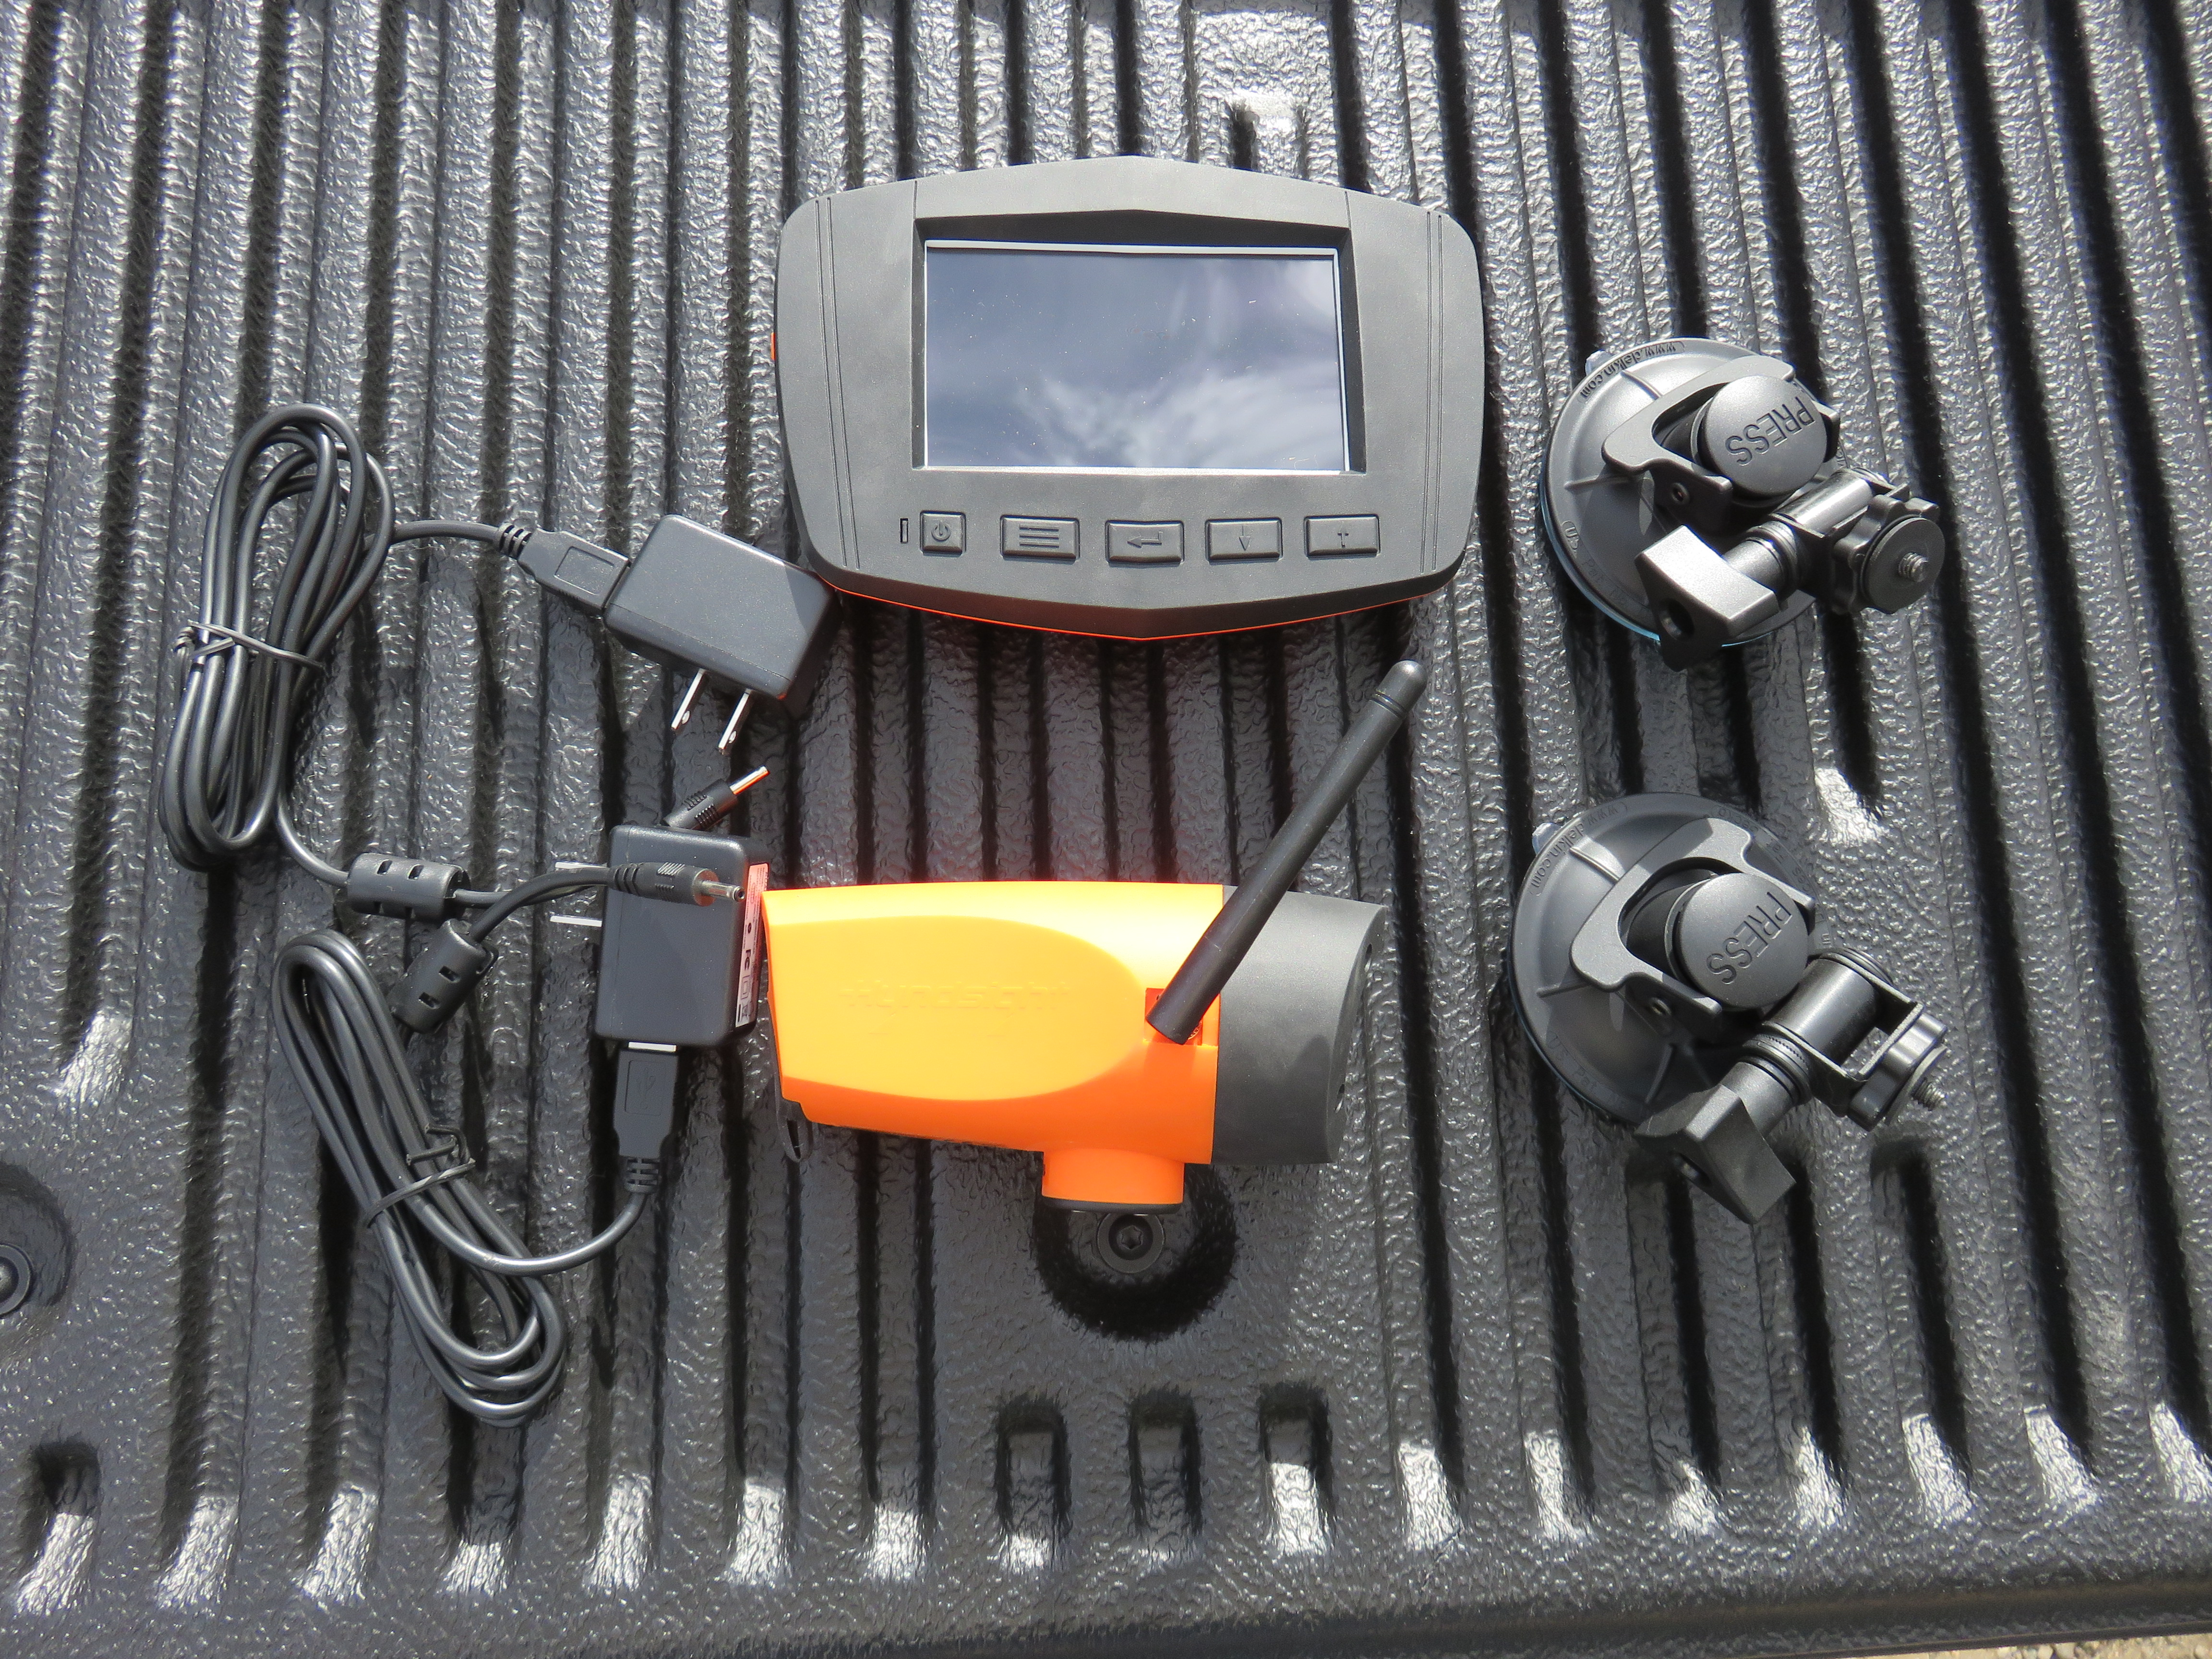 Horse Trailer Wireless Camera System Wire Center 2006 Commander With A Dome Light Circuit Issuefuse Panelswitches Images Gallery